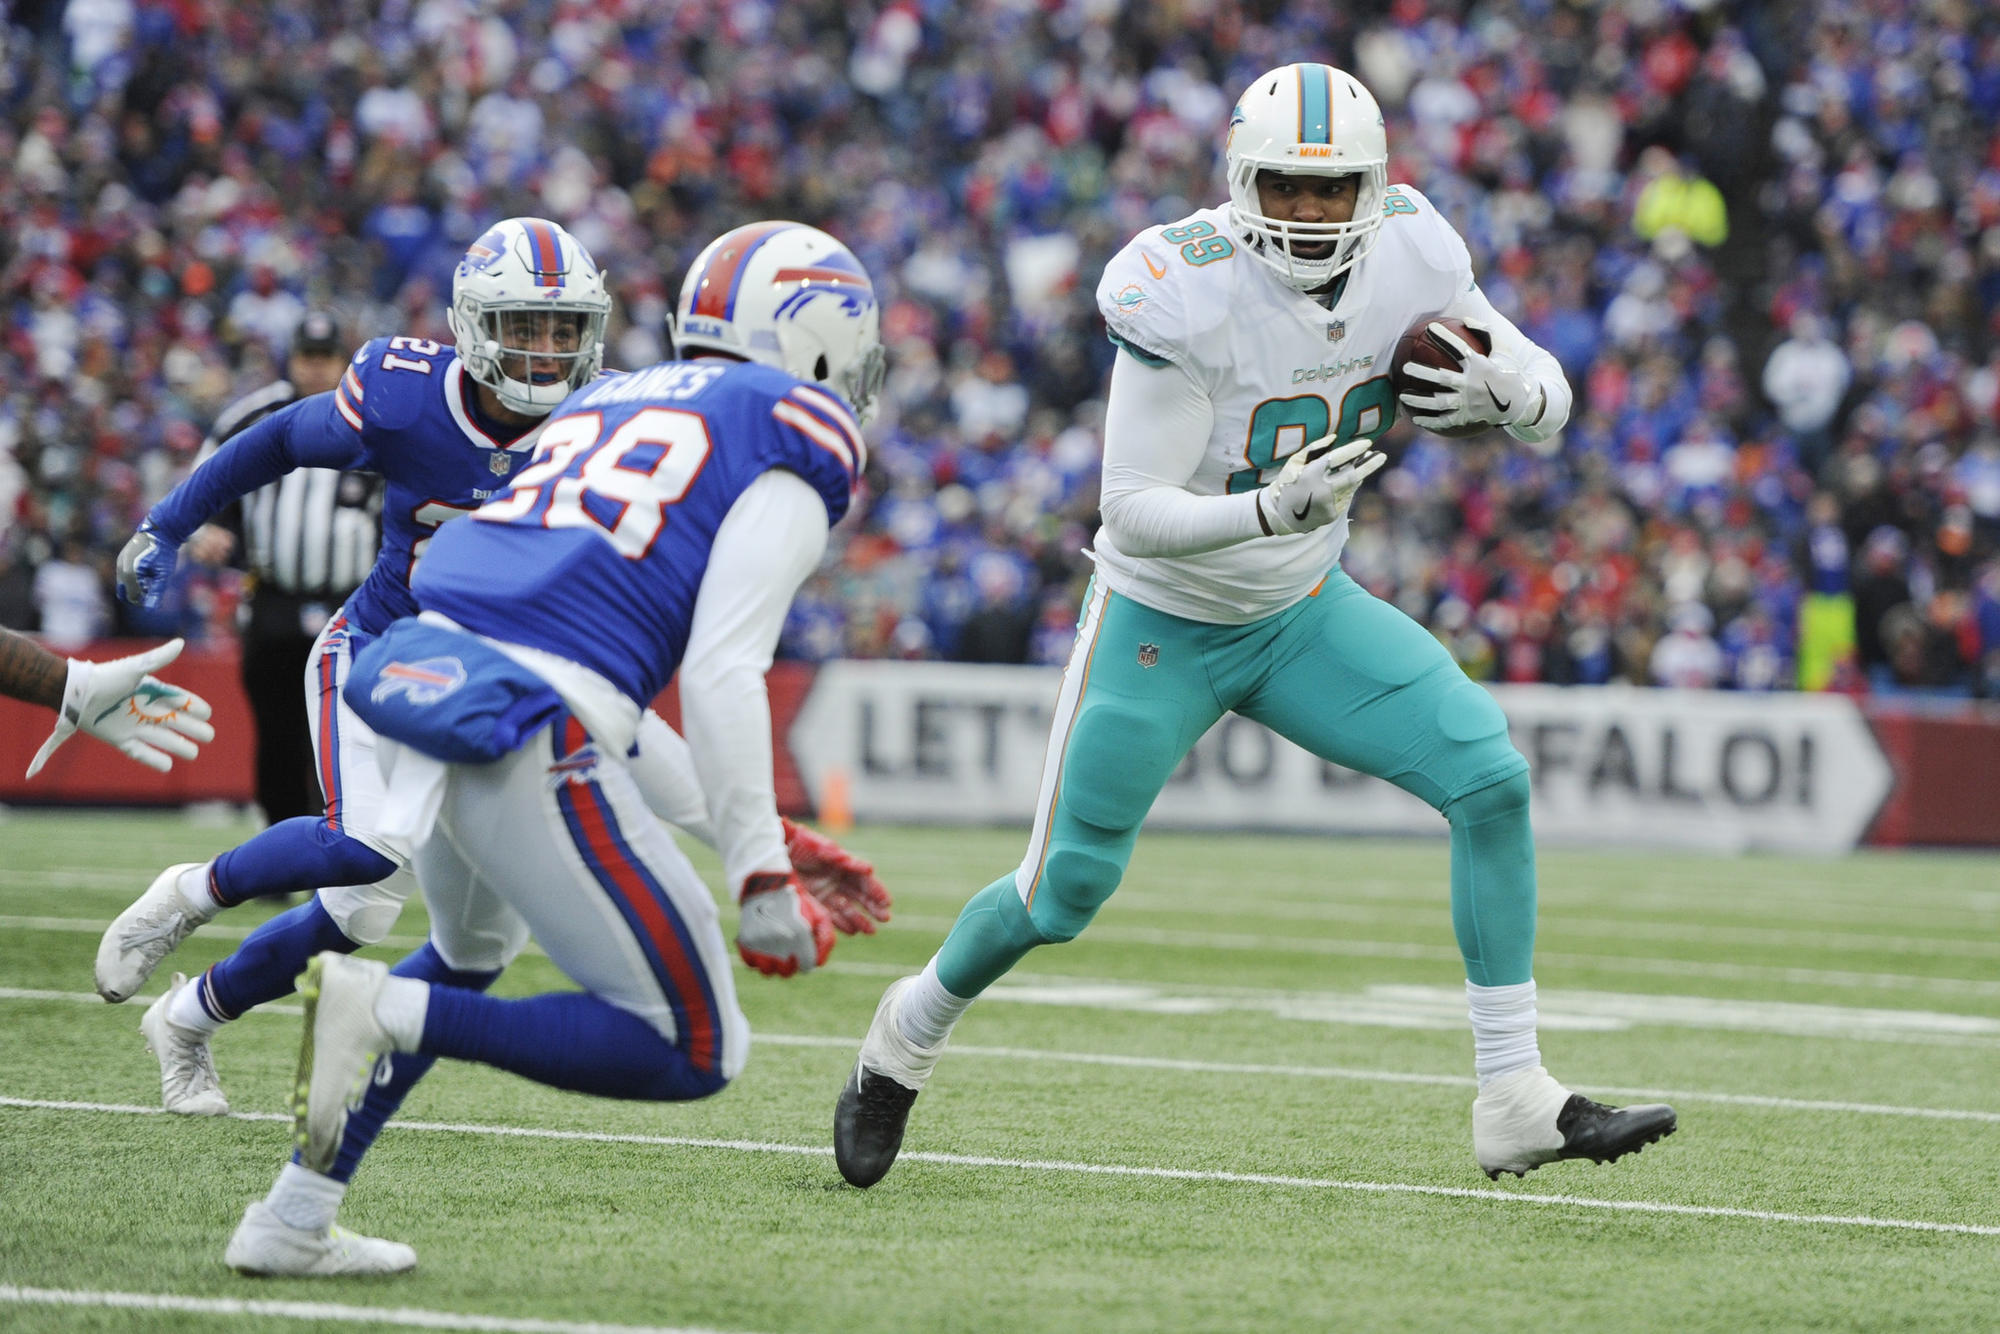 Fl-sp-hyde5-dolphins-tight-end-20180112